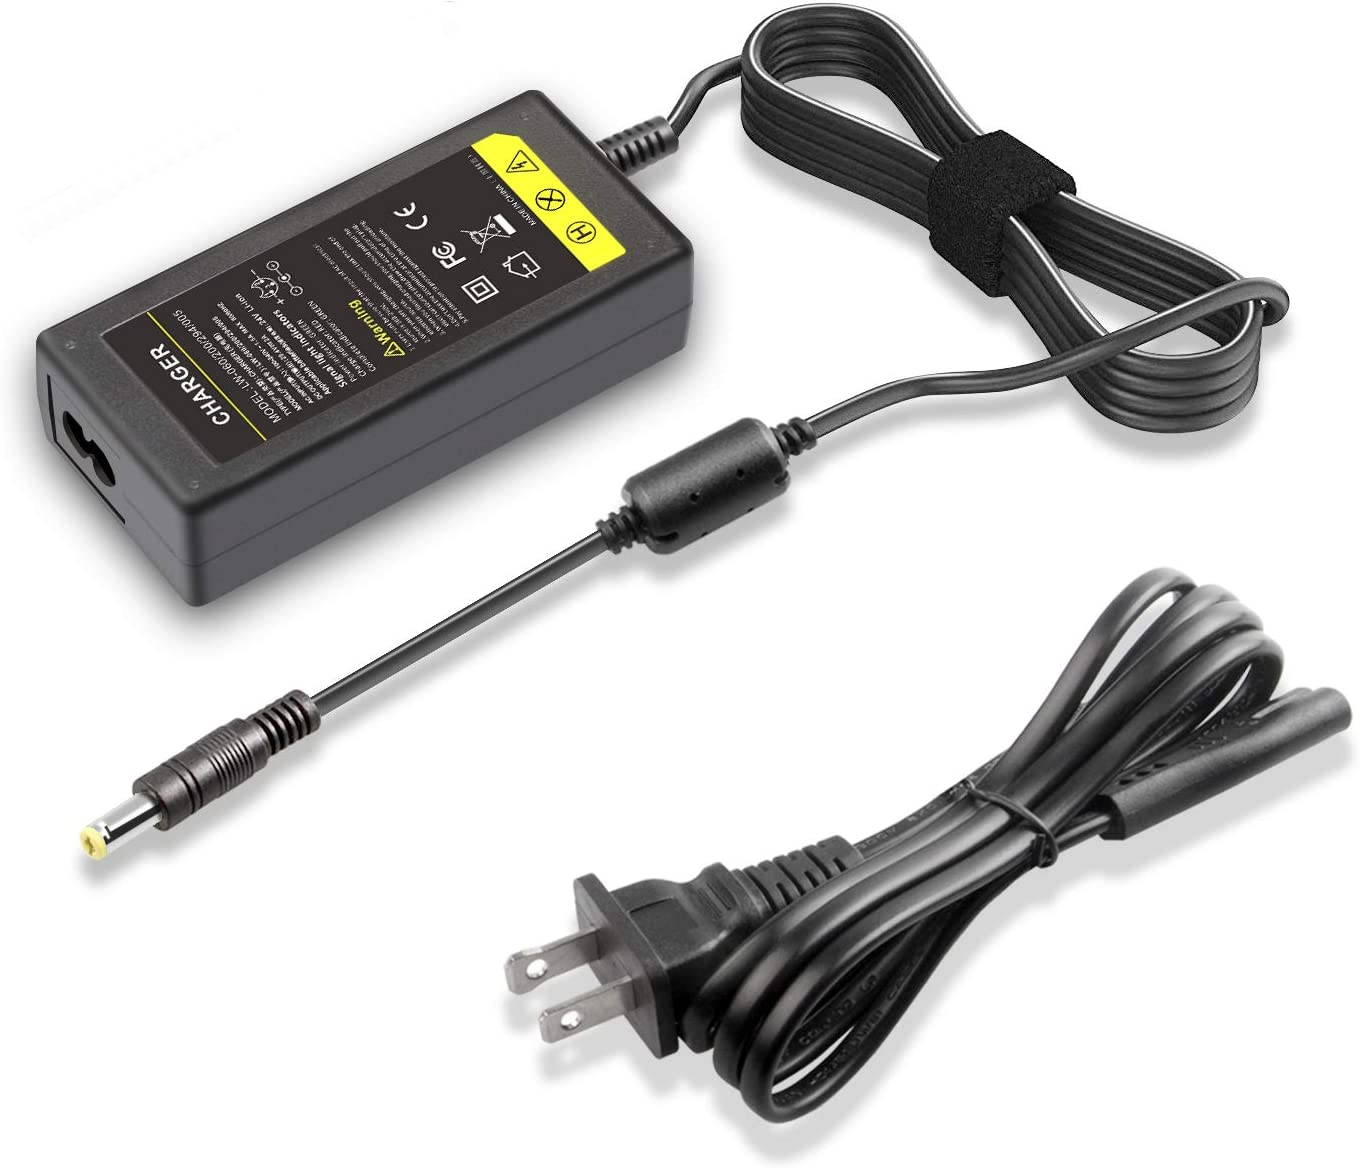 Li-ion Battery Charger Eseegoo UL Listed 29.4V 2A AC//DC Adapter Charger for 24V Input 100-240V AC-DC DC 5.5 x 2.1 mm Round Plug Charge Port for 7 Series 7S Lithium Battery Pack